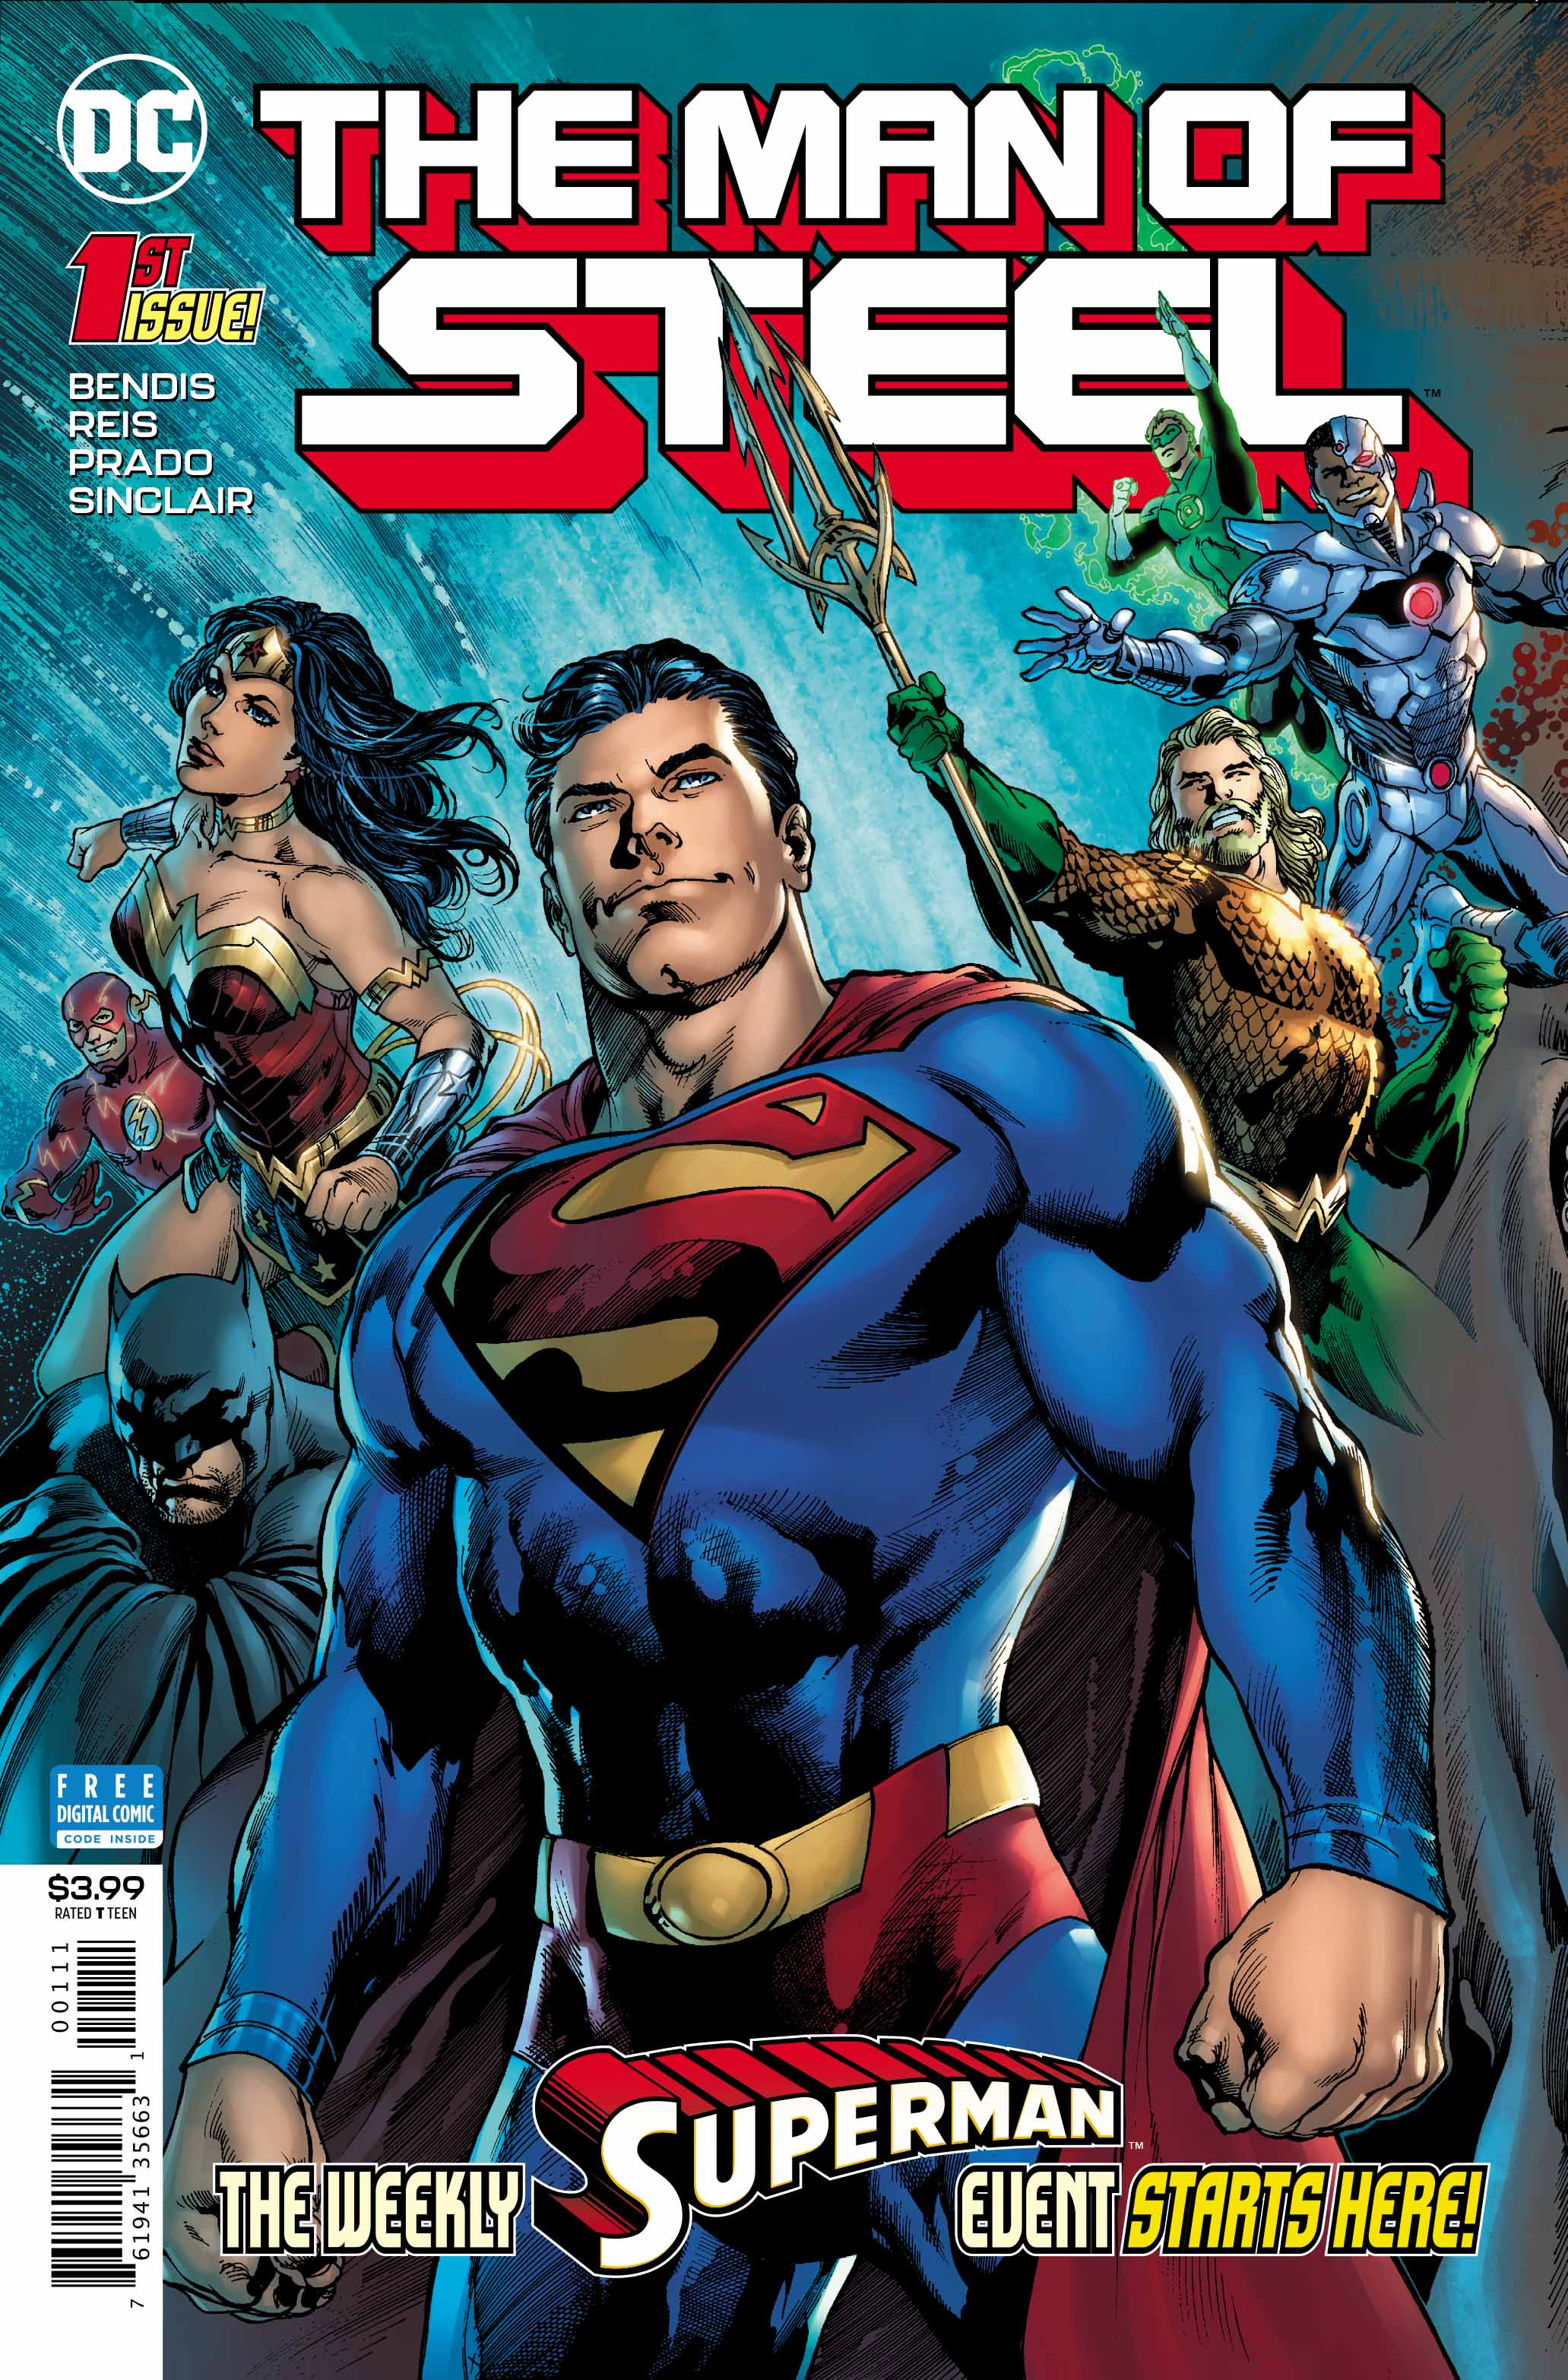 The Man of Steel #1 cover